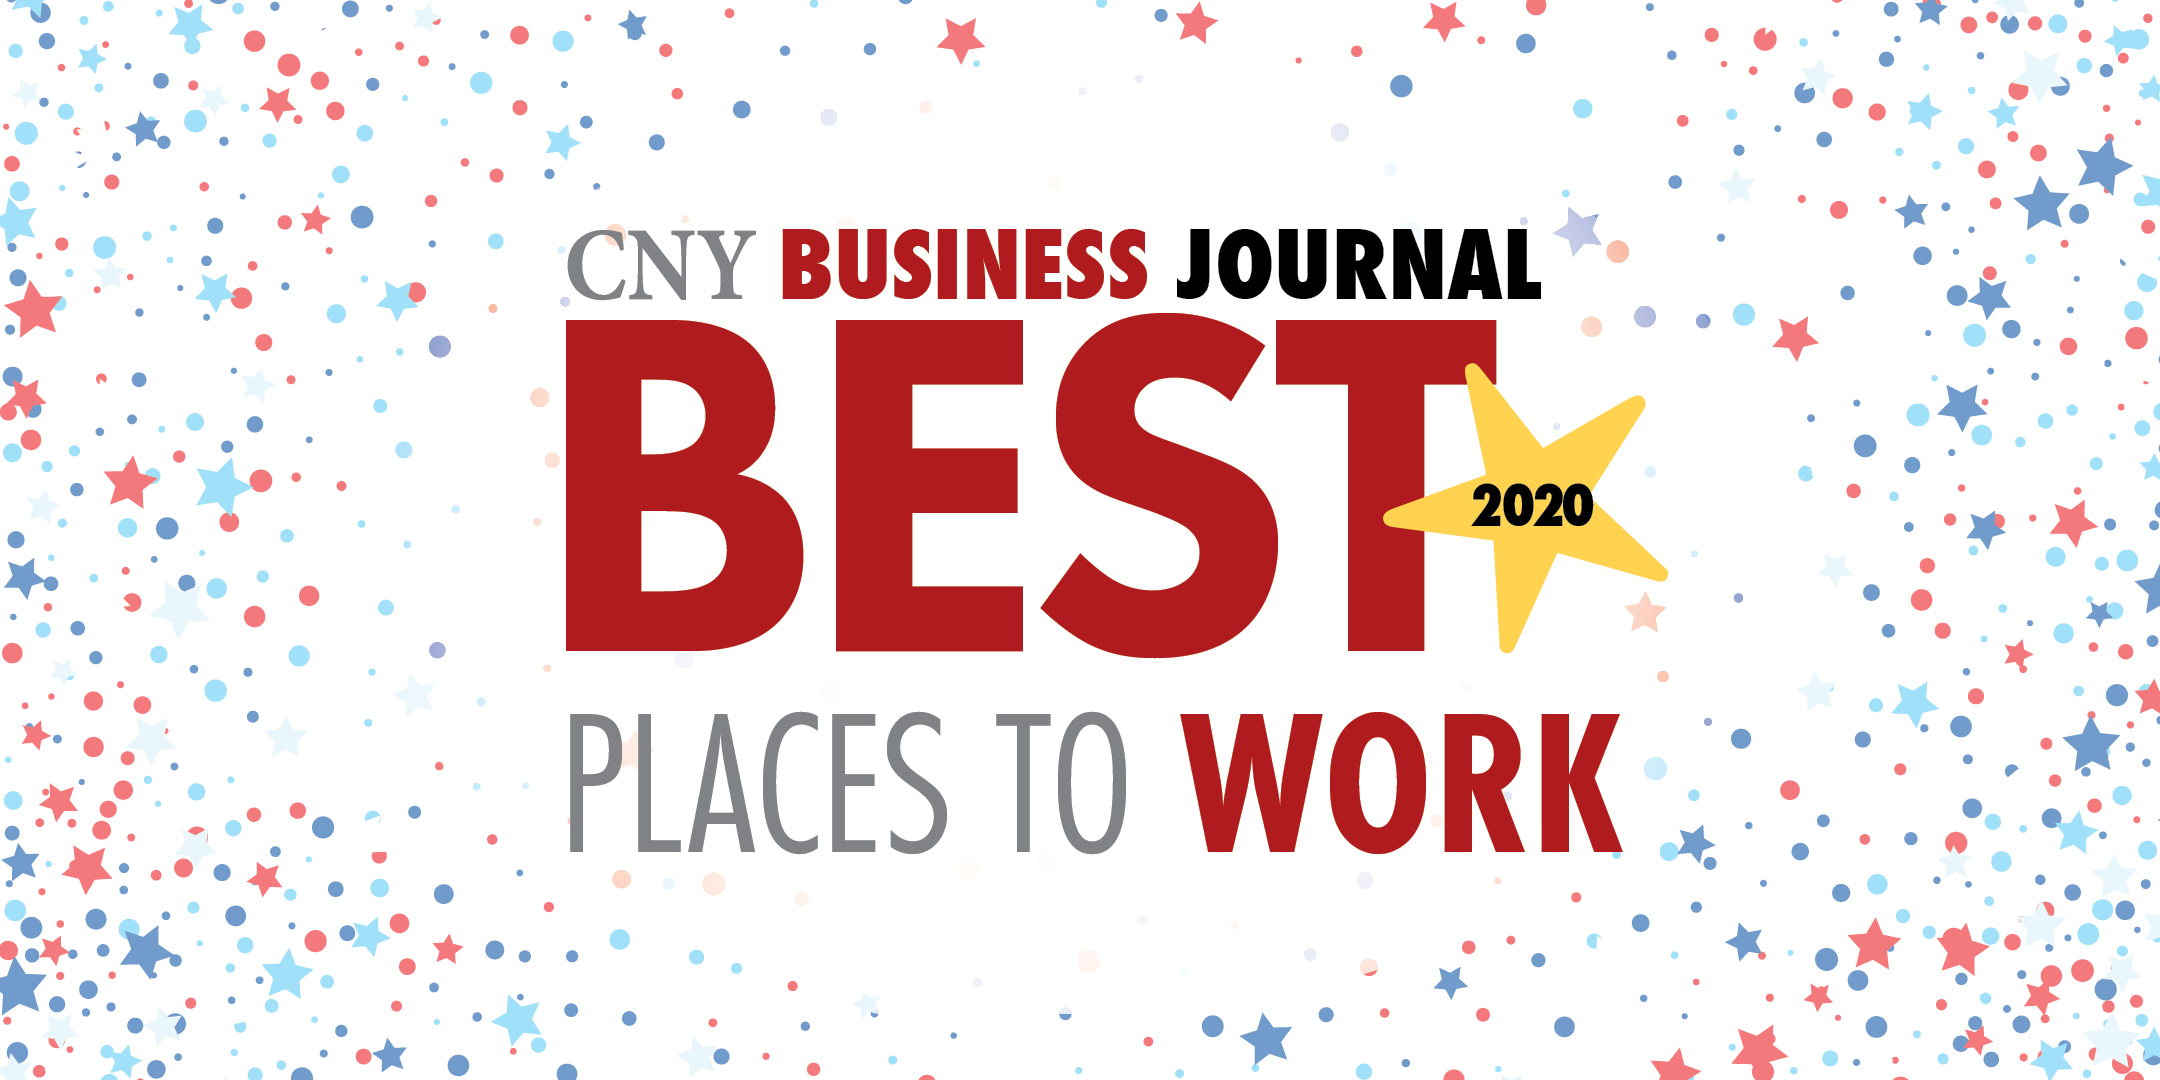 2020 Best Places to Work Awards